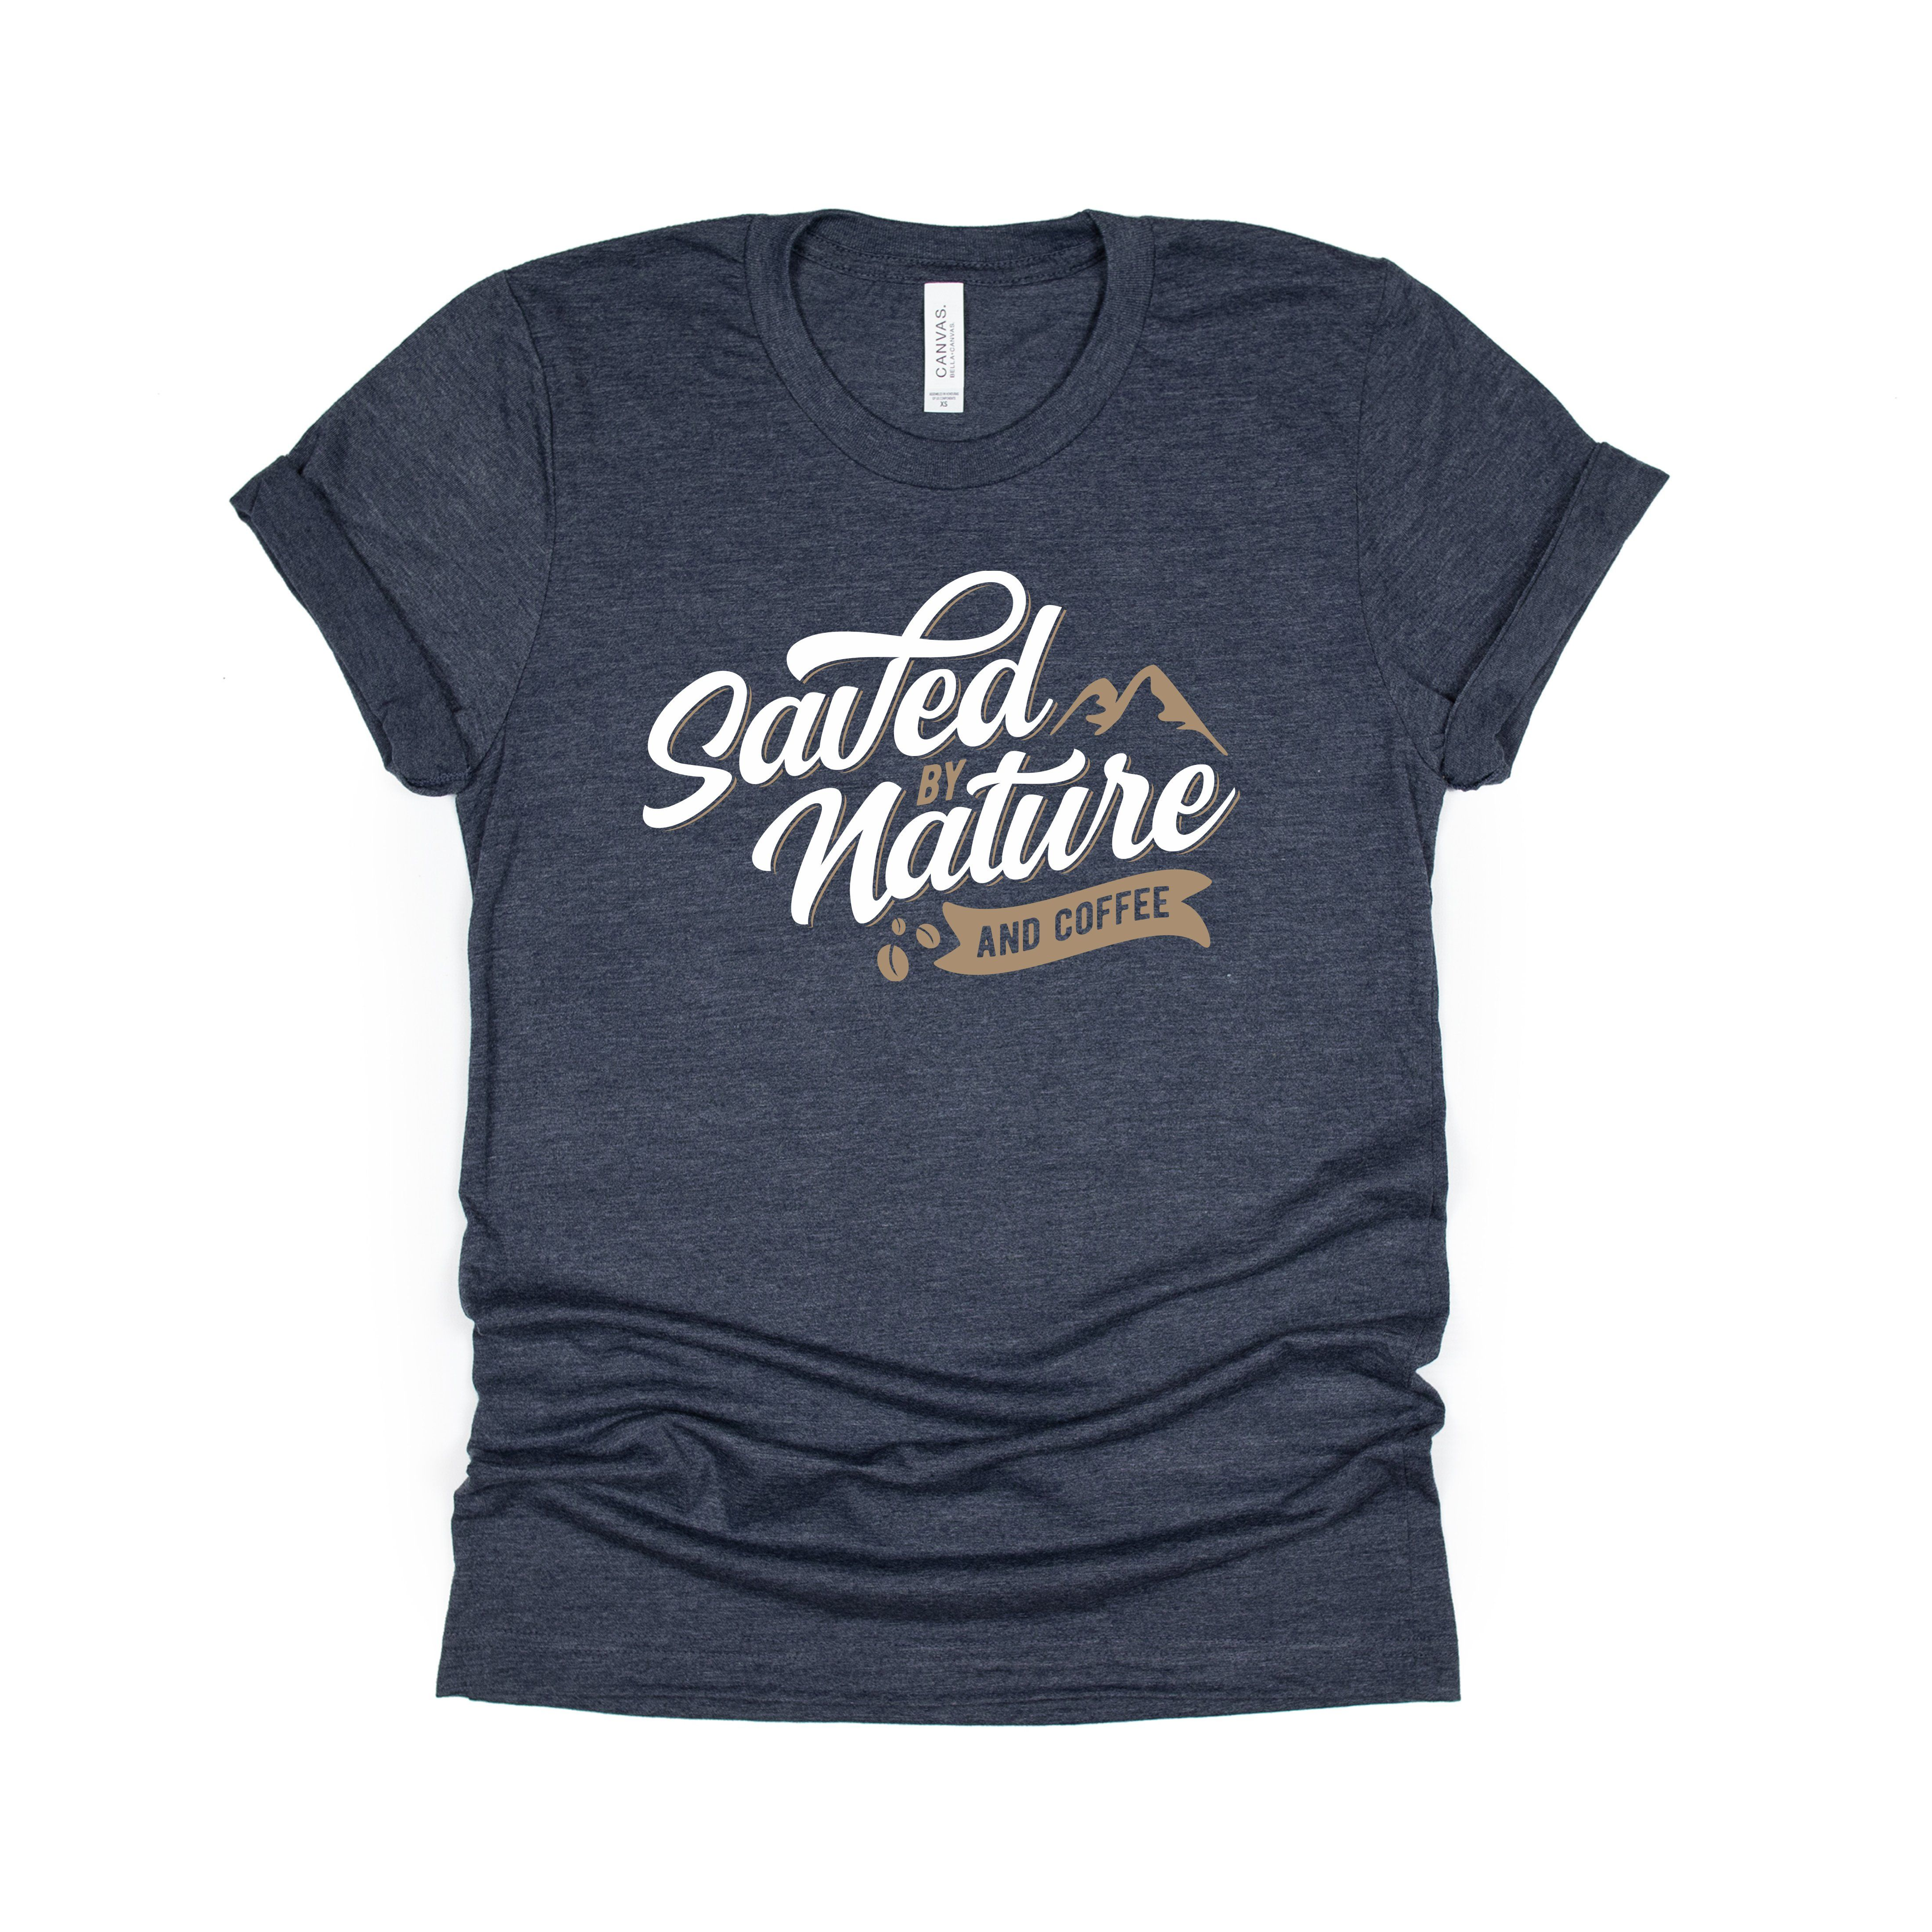 Saved by Nature and Coffee Tee - Heather Navy / M